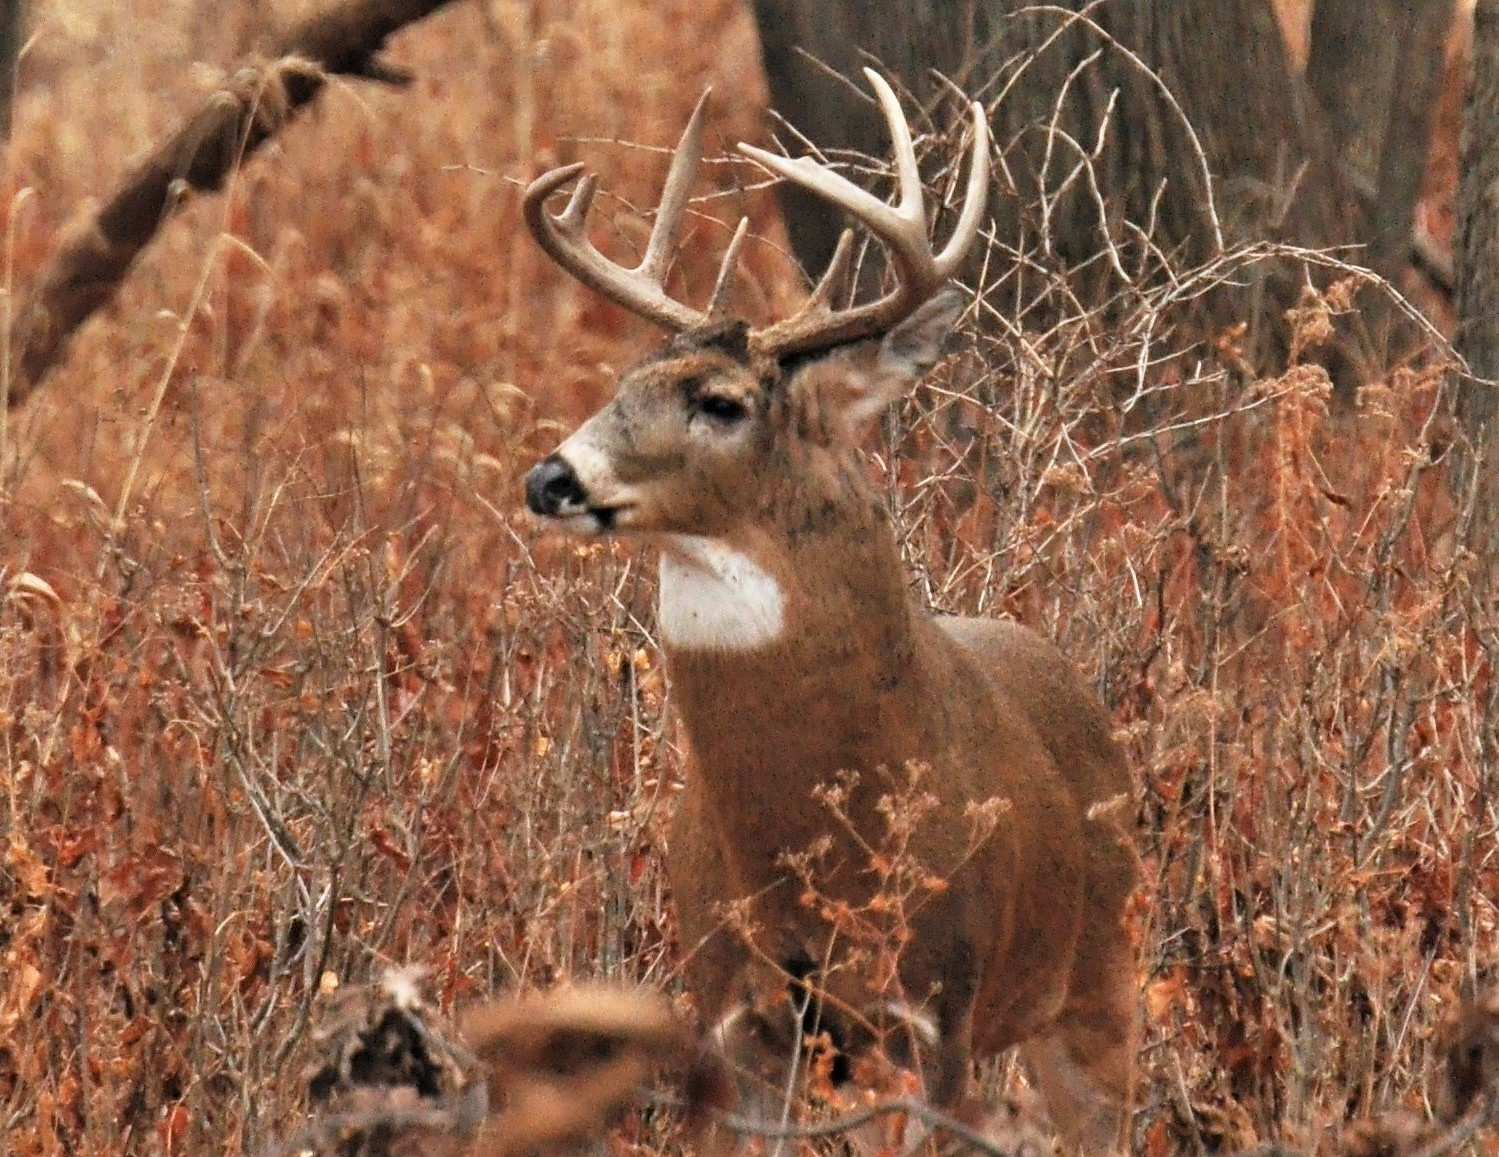 fbfdedcbca378 Deer hunters follow many paths to success. Some hunters carry bows. Others  favor firearms. Some dress in camouflage and sit in trees.